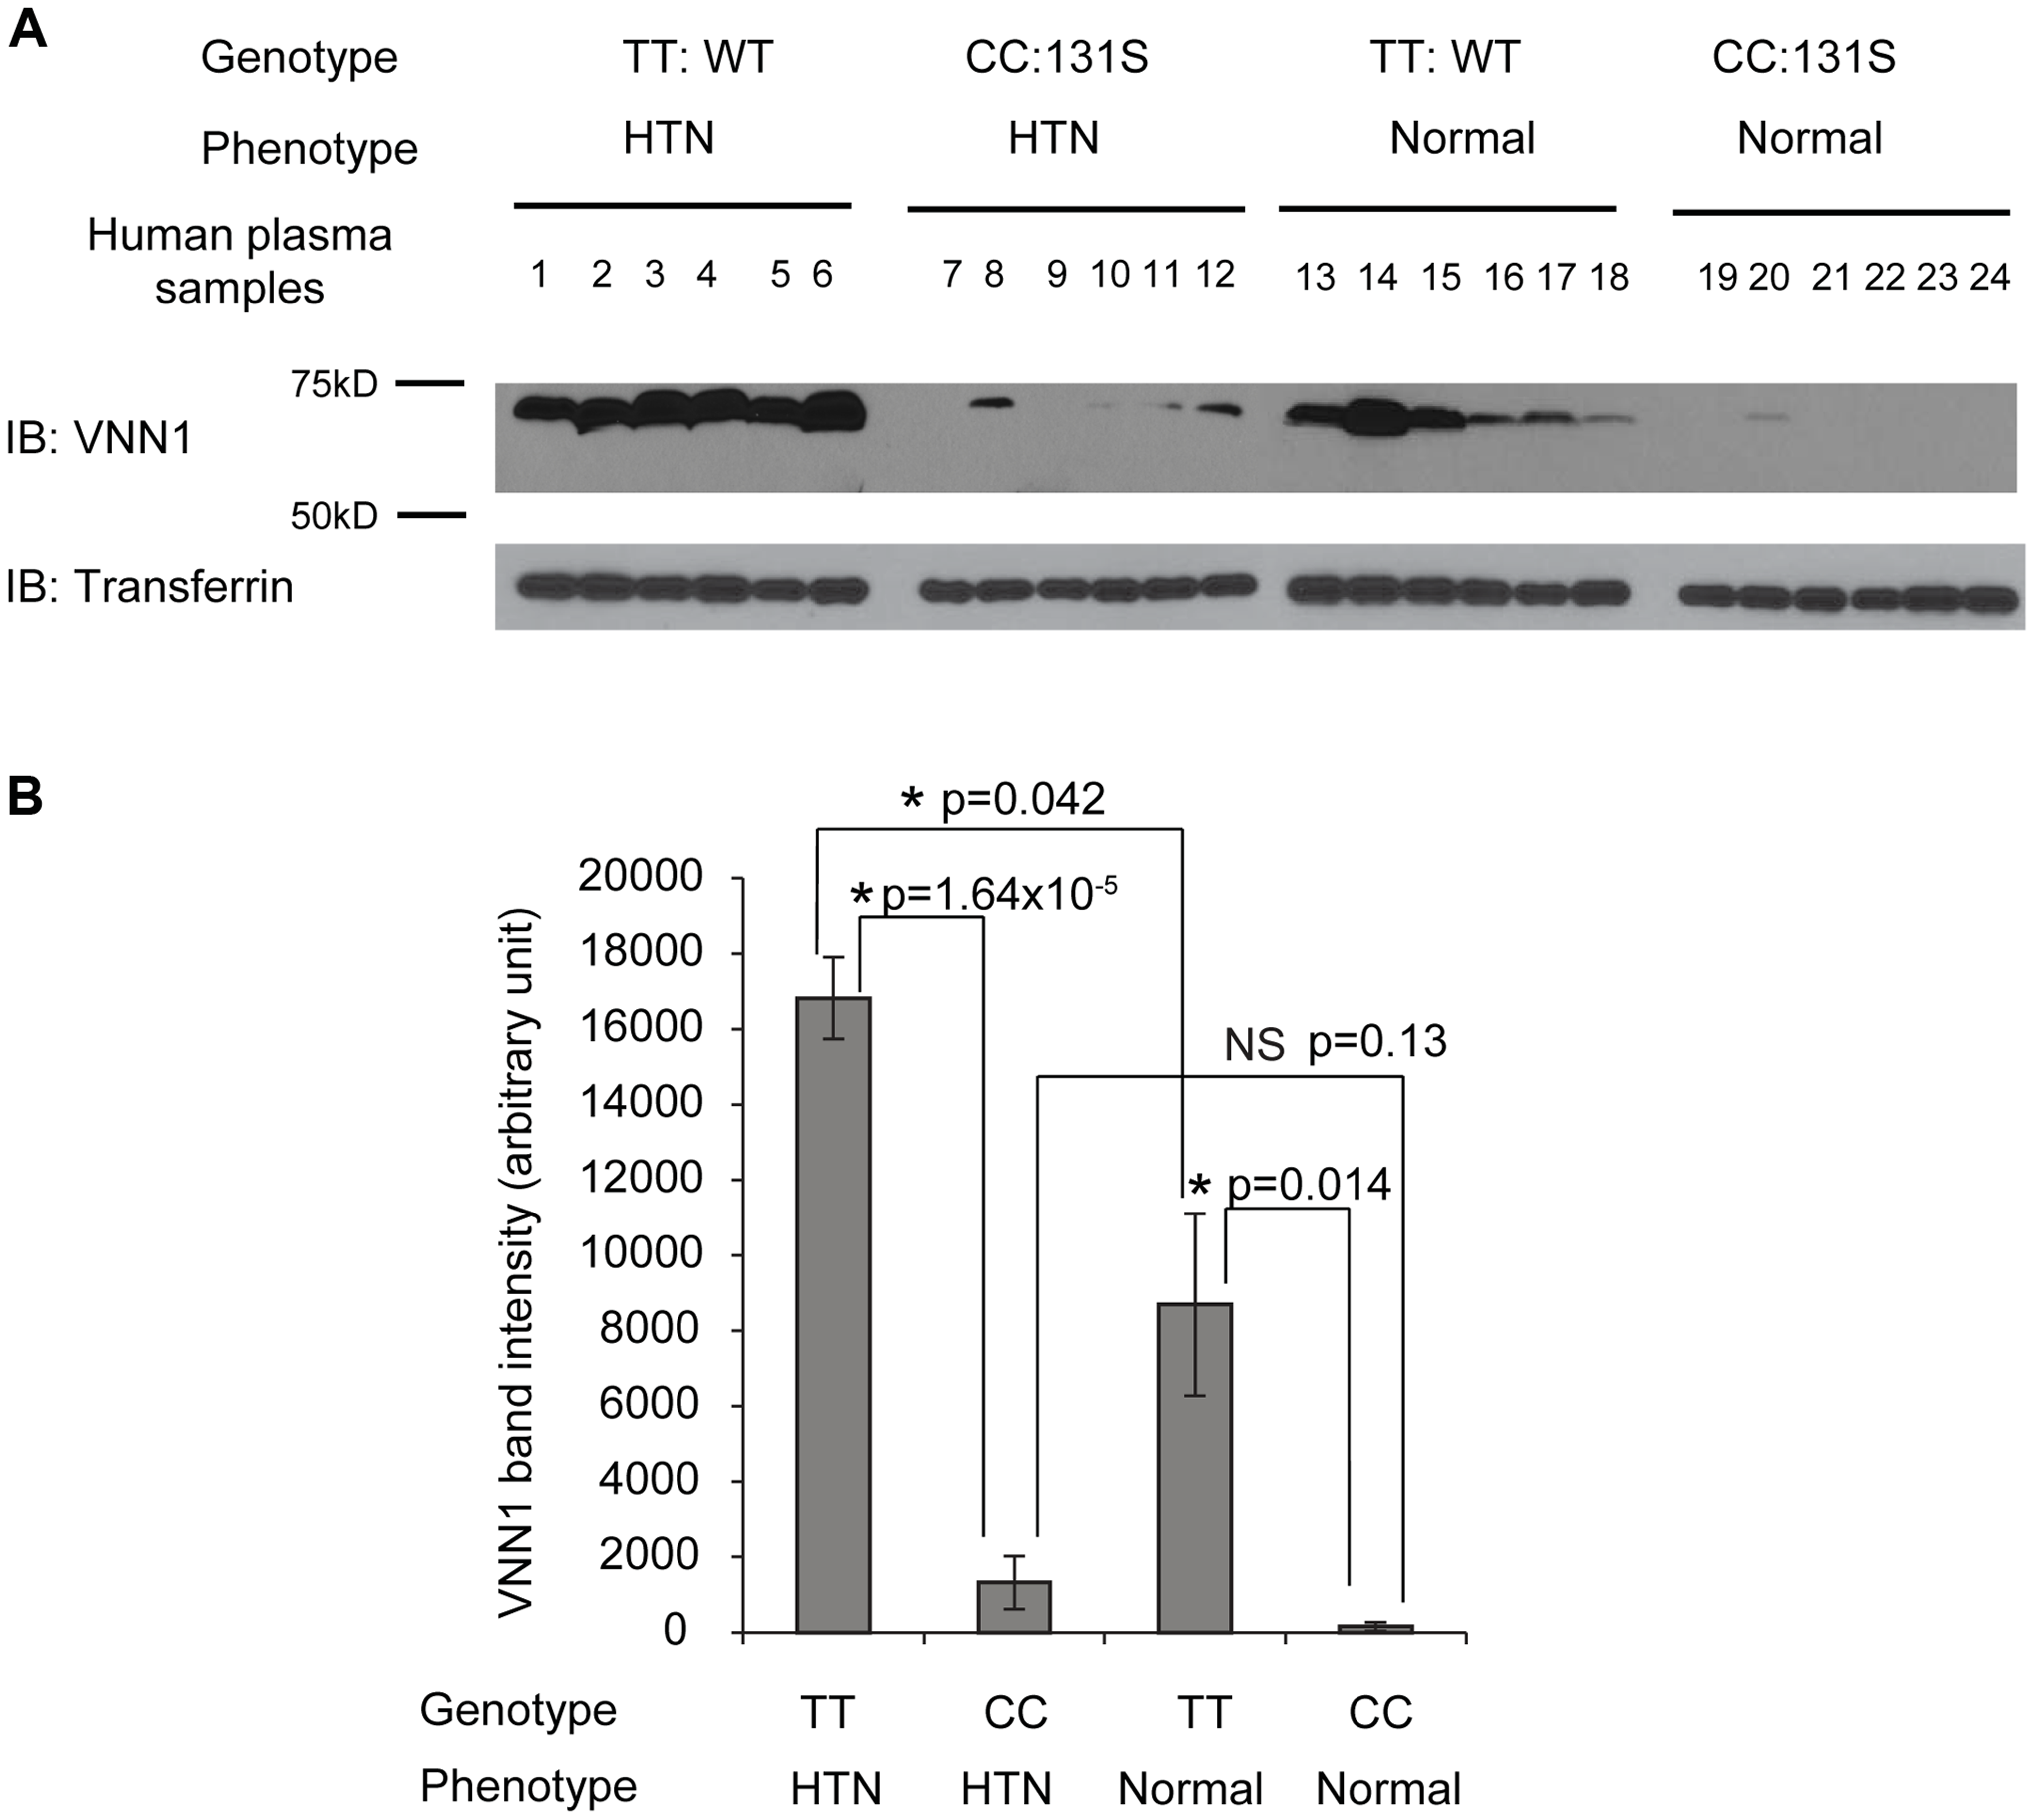 The vanin-1 expression in human plasma samples is closely linked with both genotypic N131S mutation and phenotypic HTN.